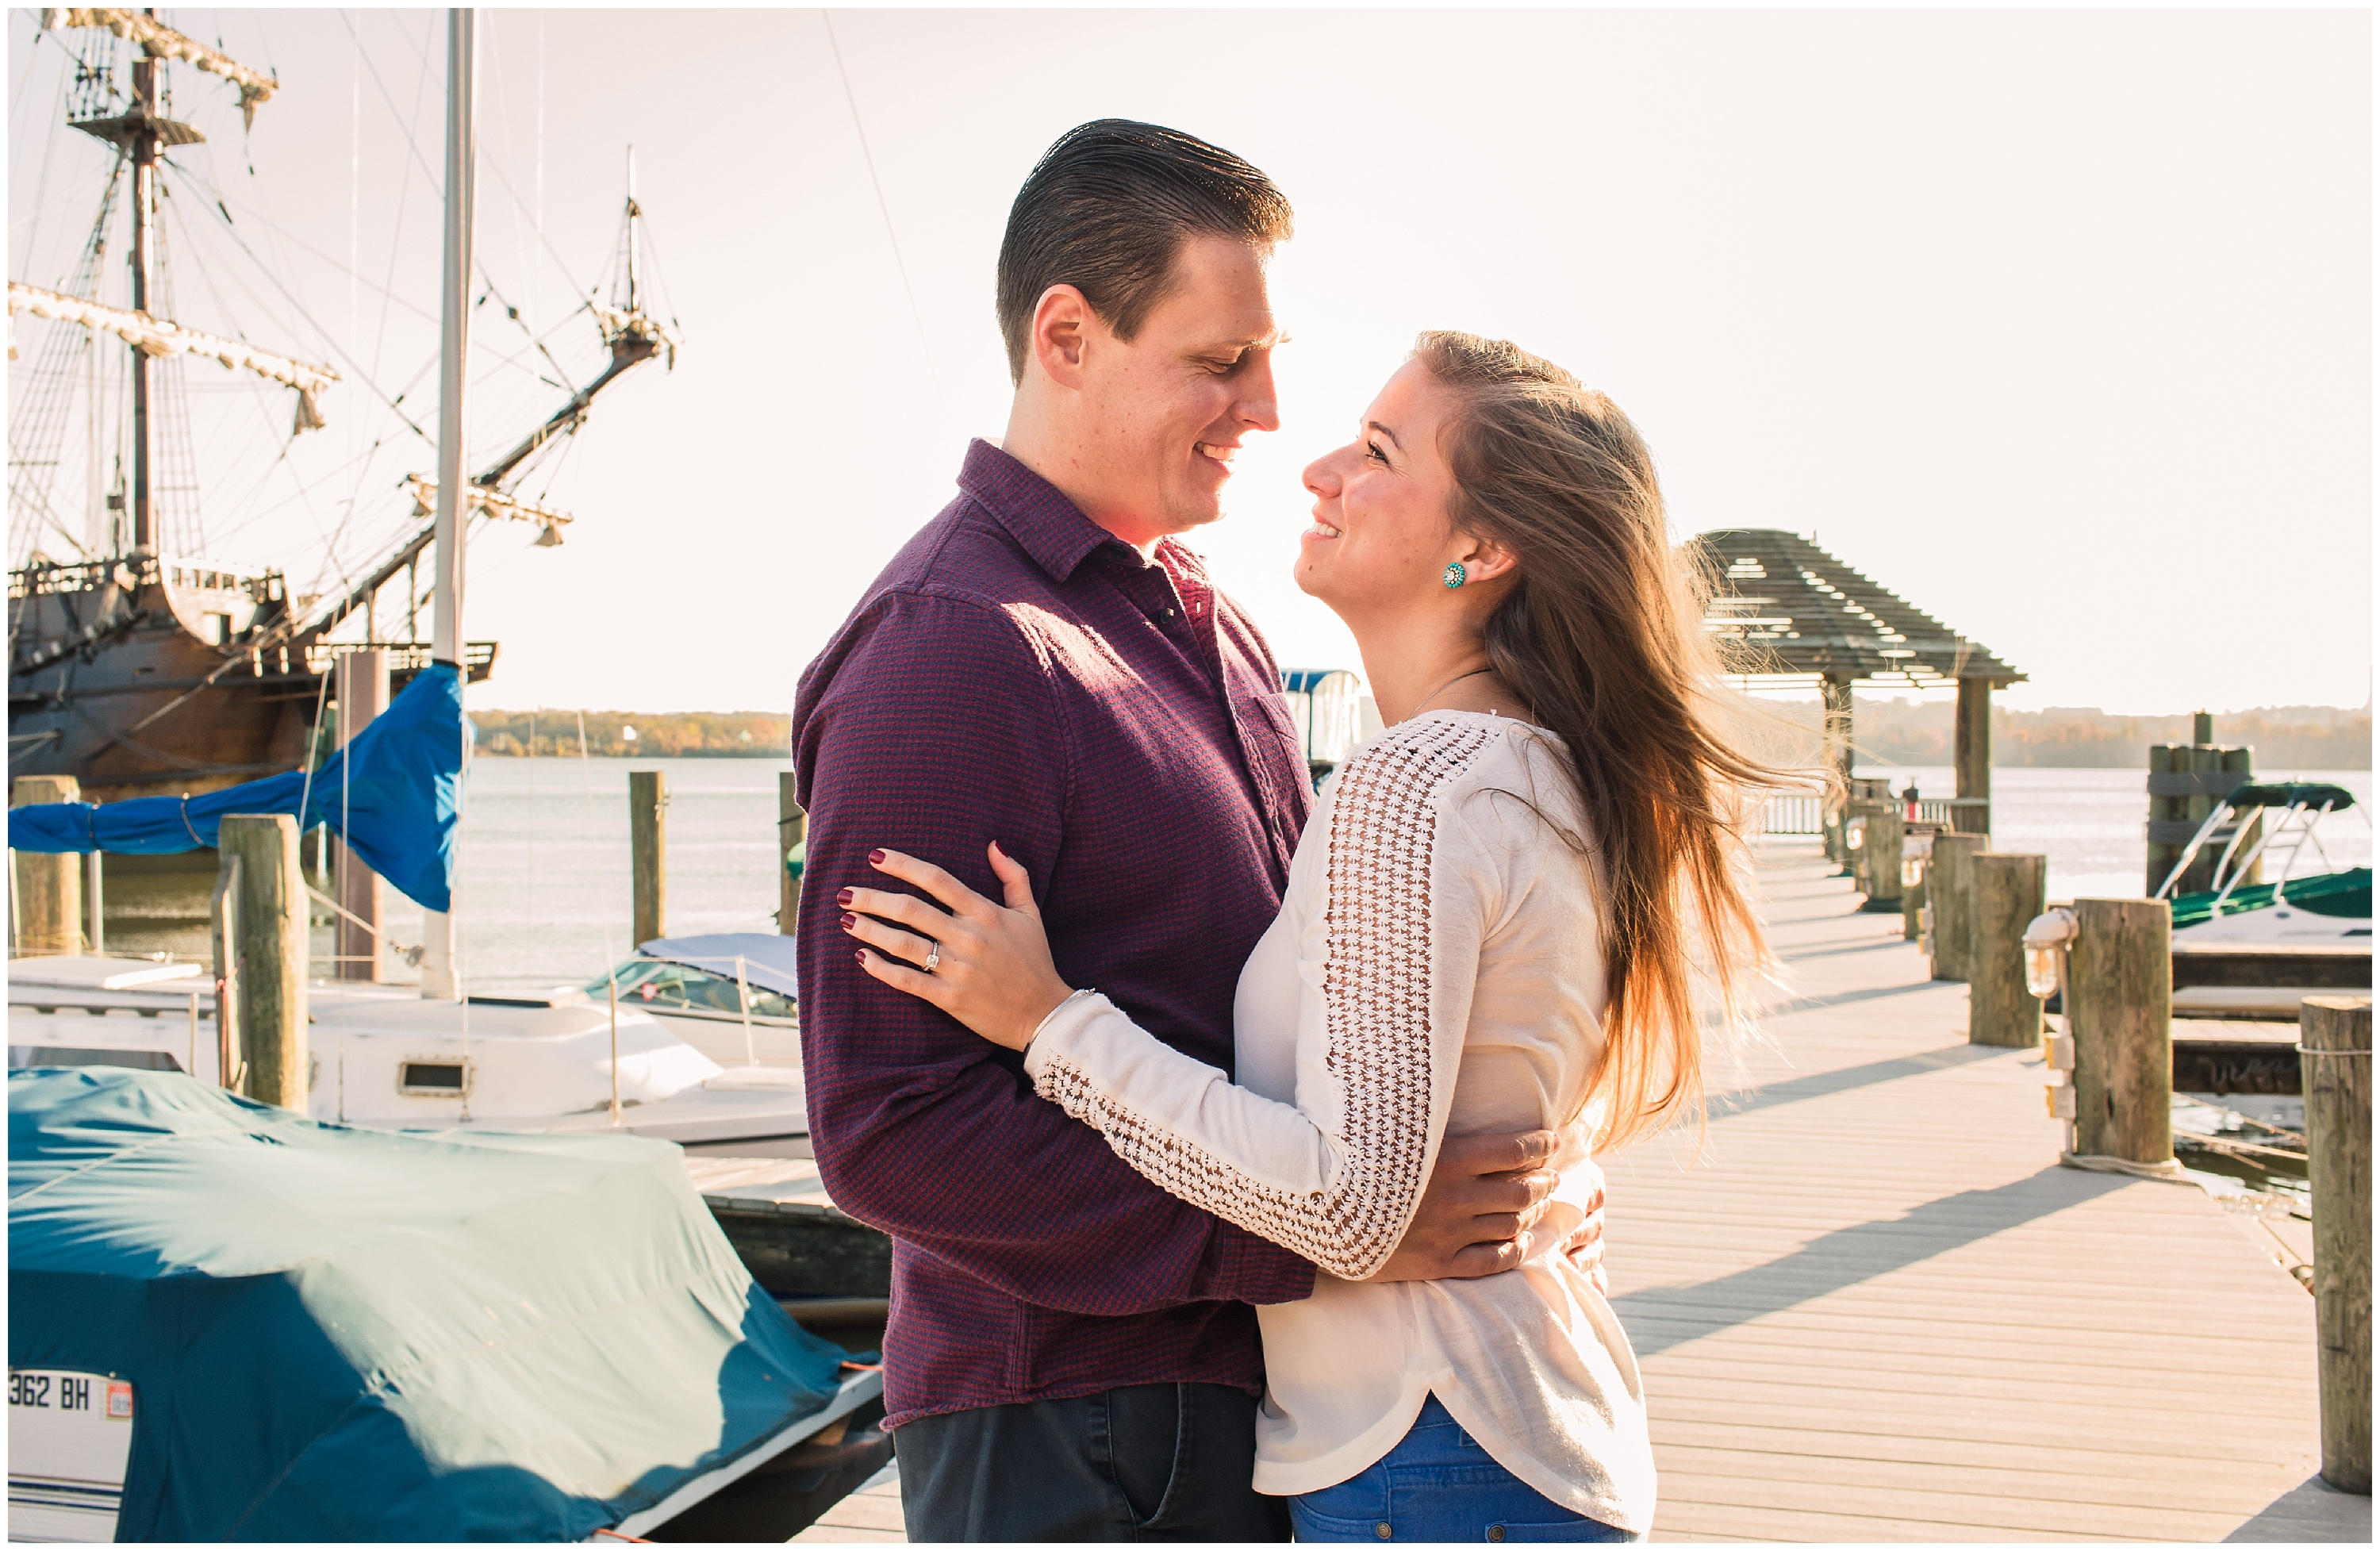 Sofia-John-Waterfront-Alexandria-Wilkes-Tunnel-DC-Engagement00031